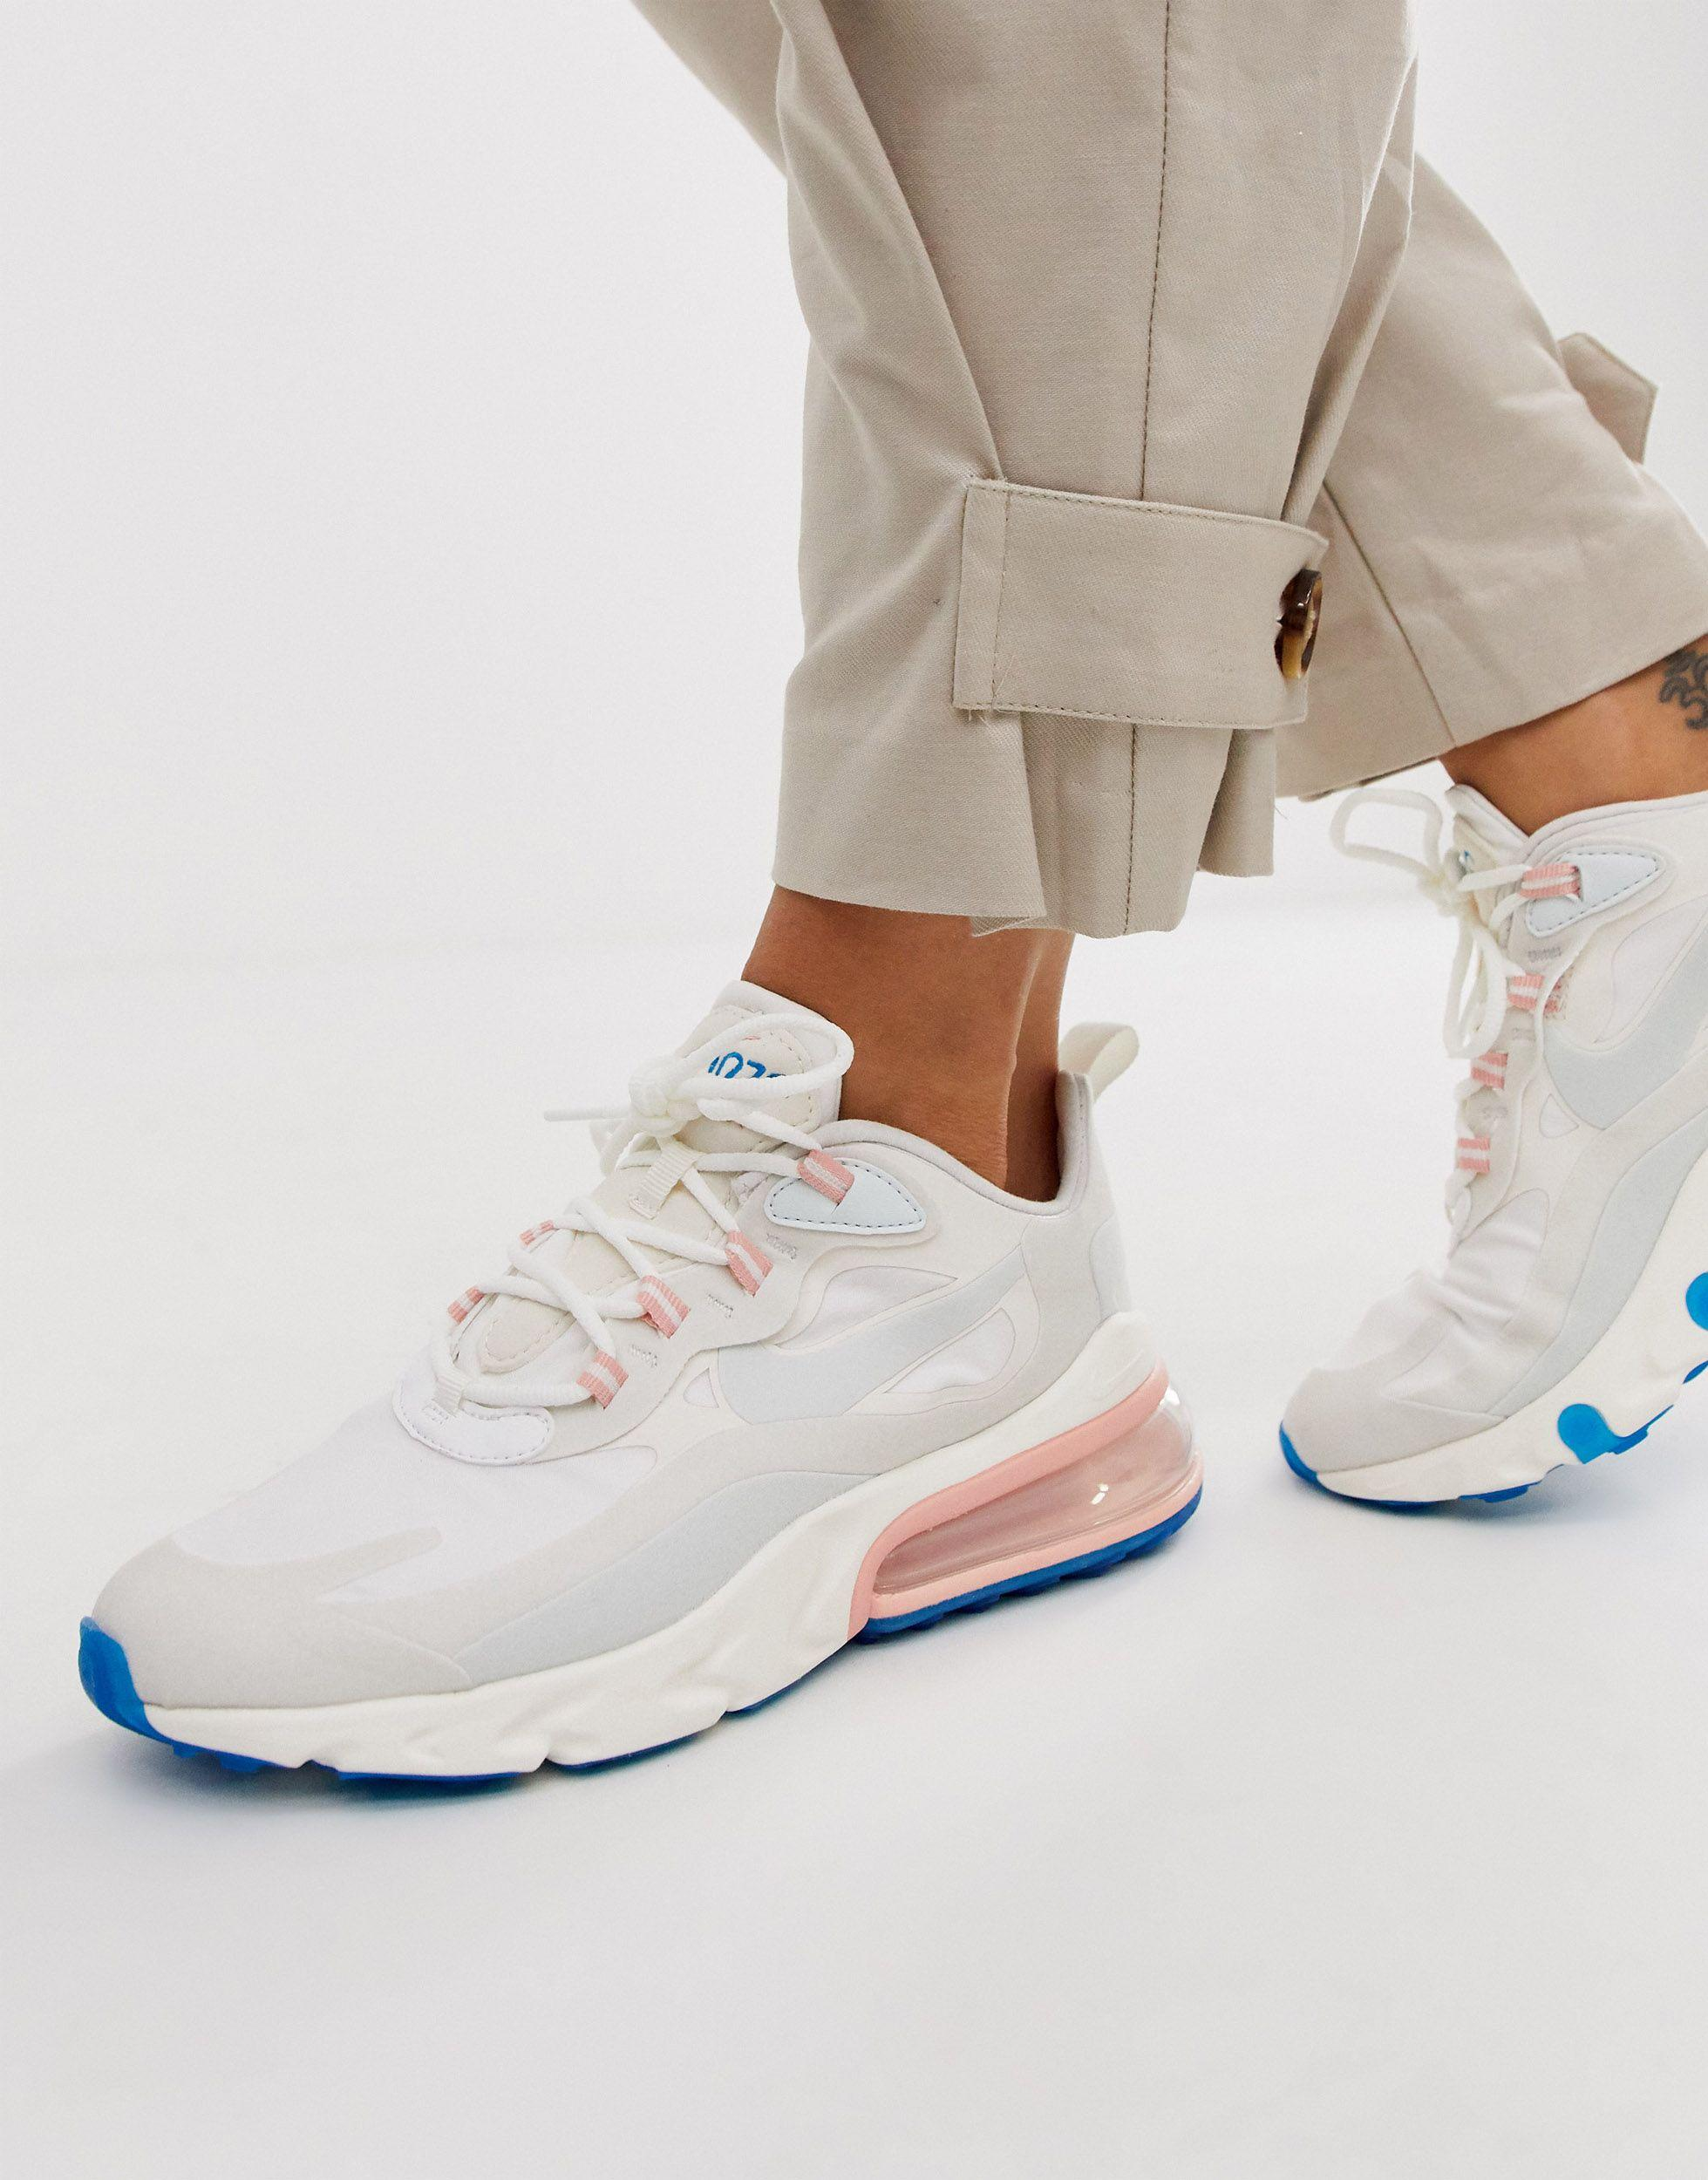 Nike Rubber White Pink And Blue Air Max 270 React Sneakers Lyst